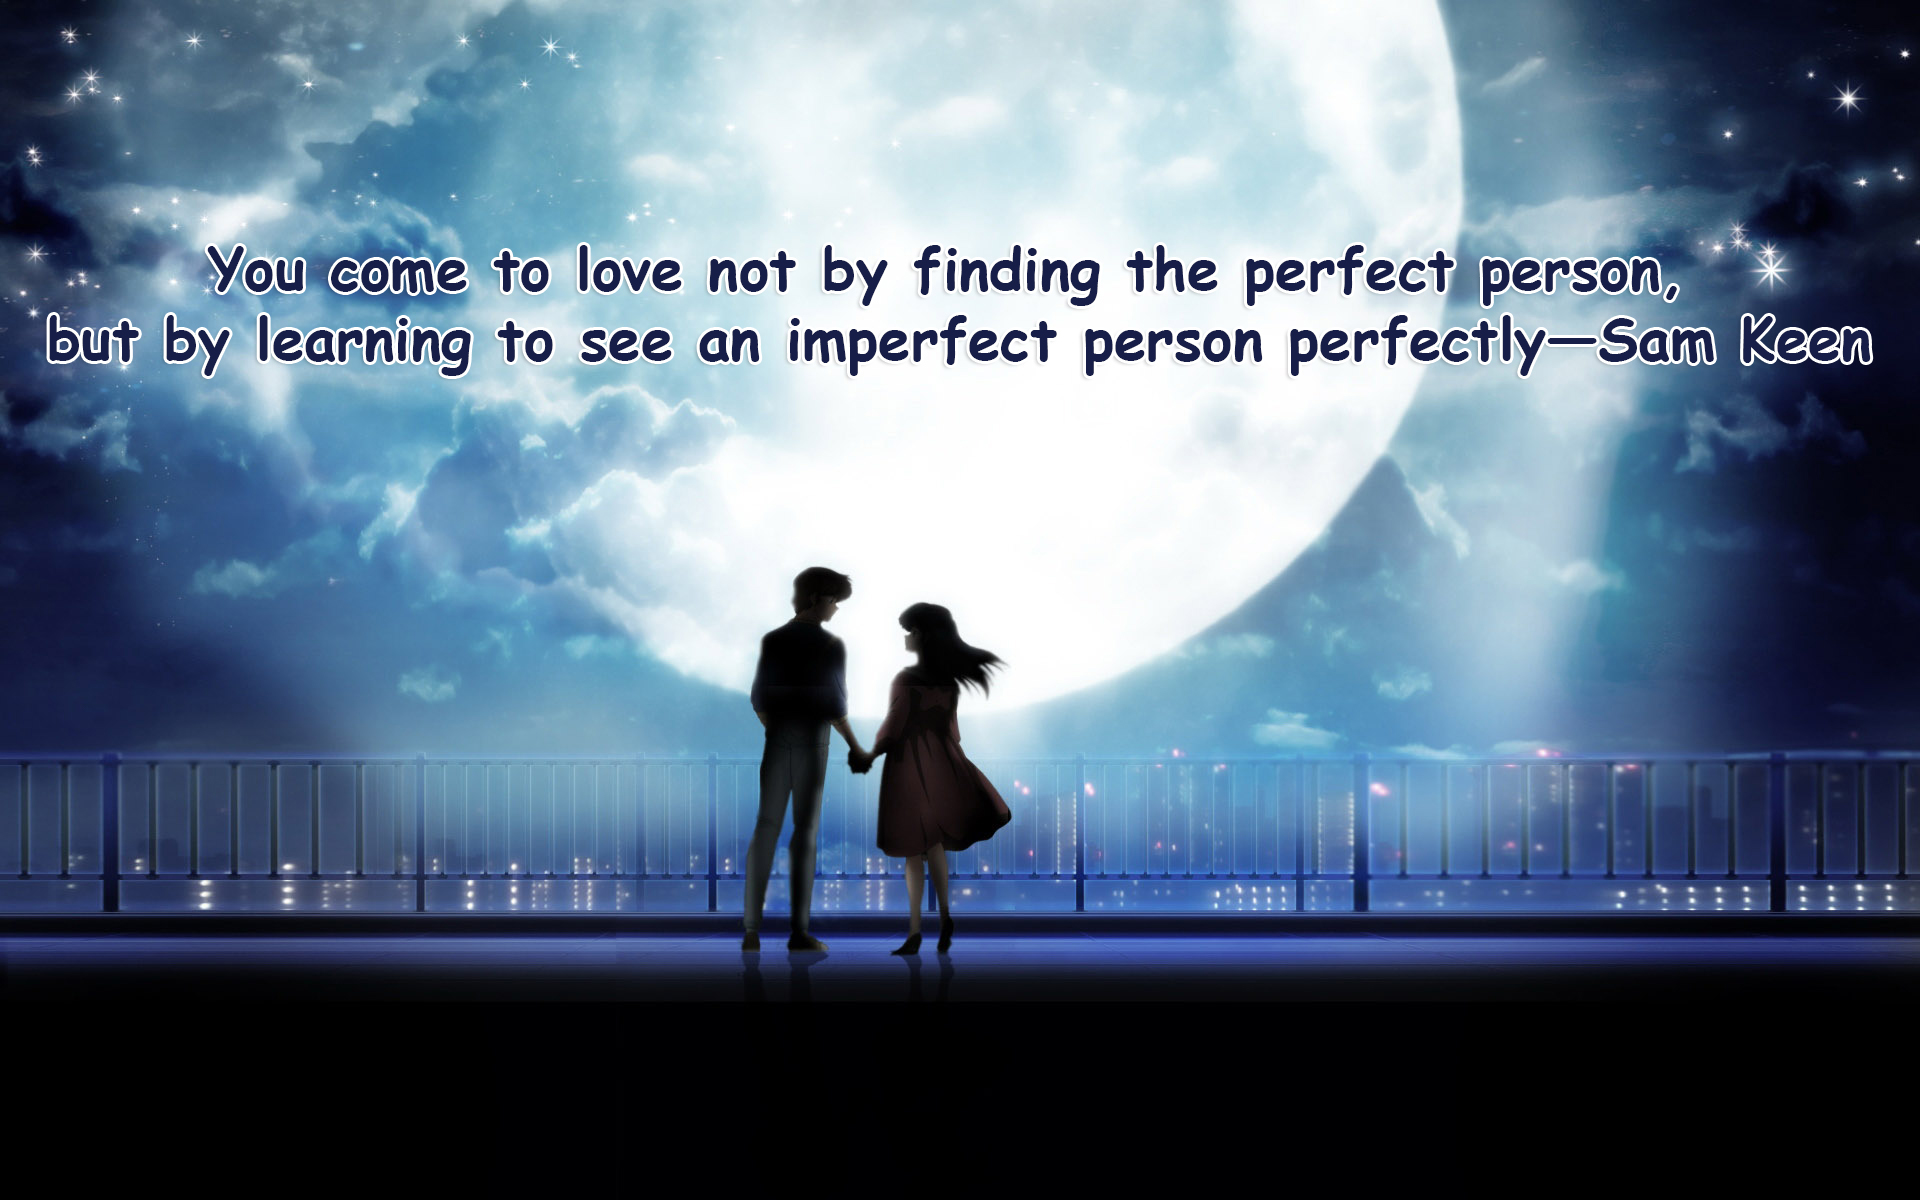 Love Wallpapers With Dialogue : 20+ Love Quotes Wallpaper -Romantic couple Images with Quotes